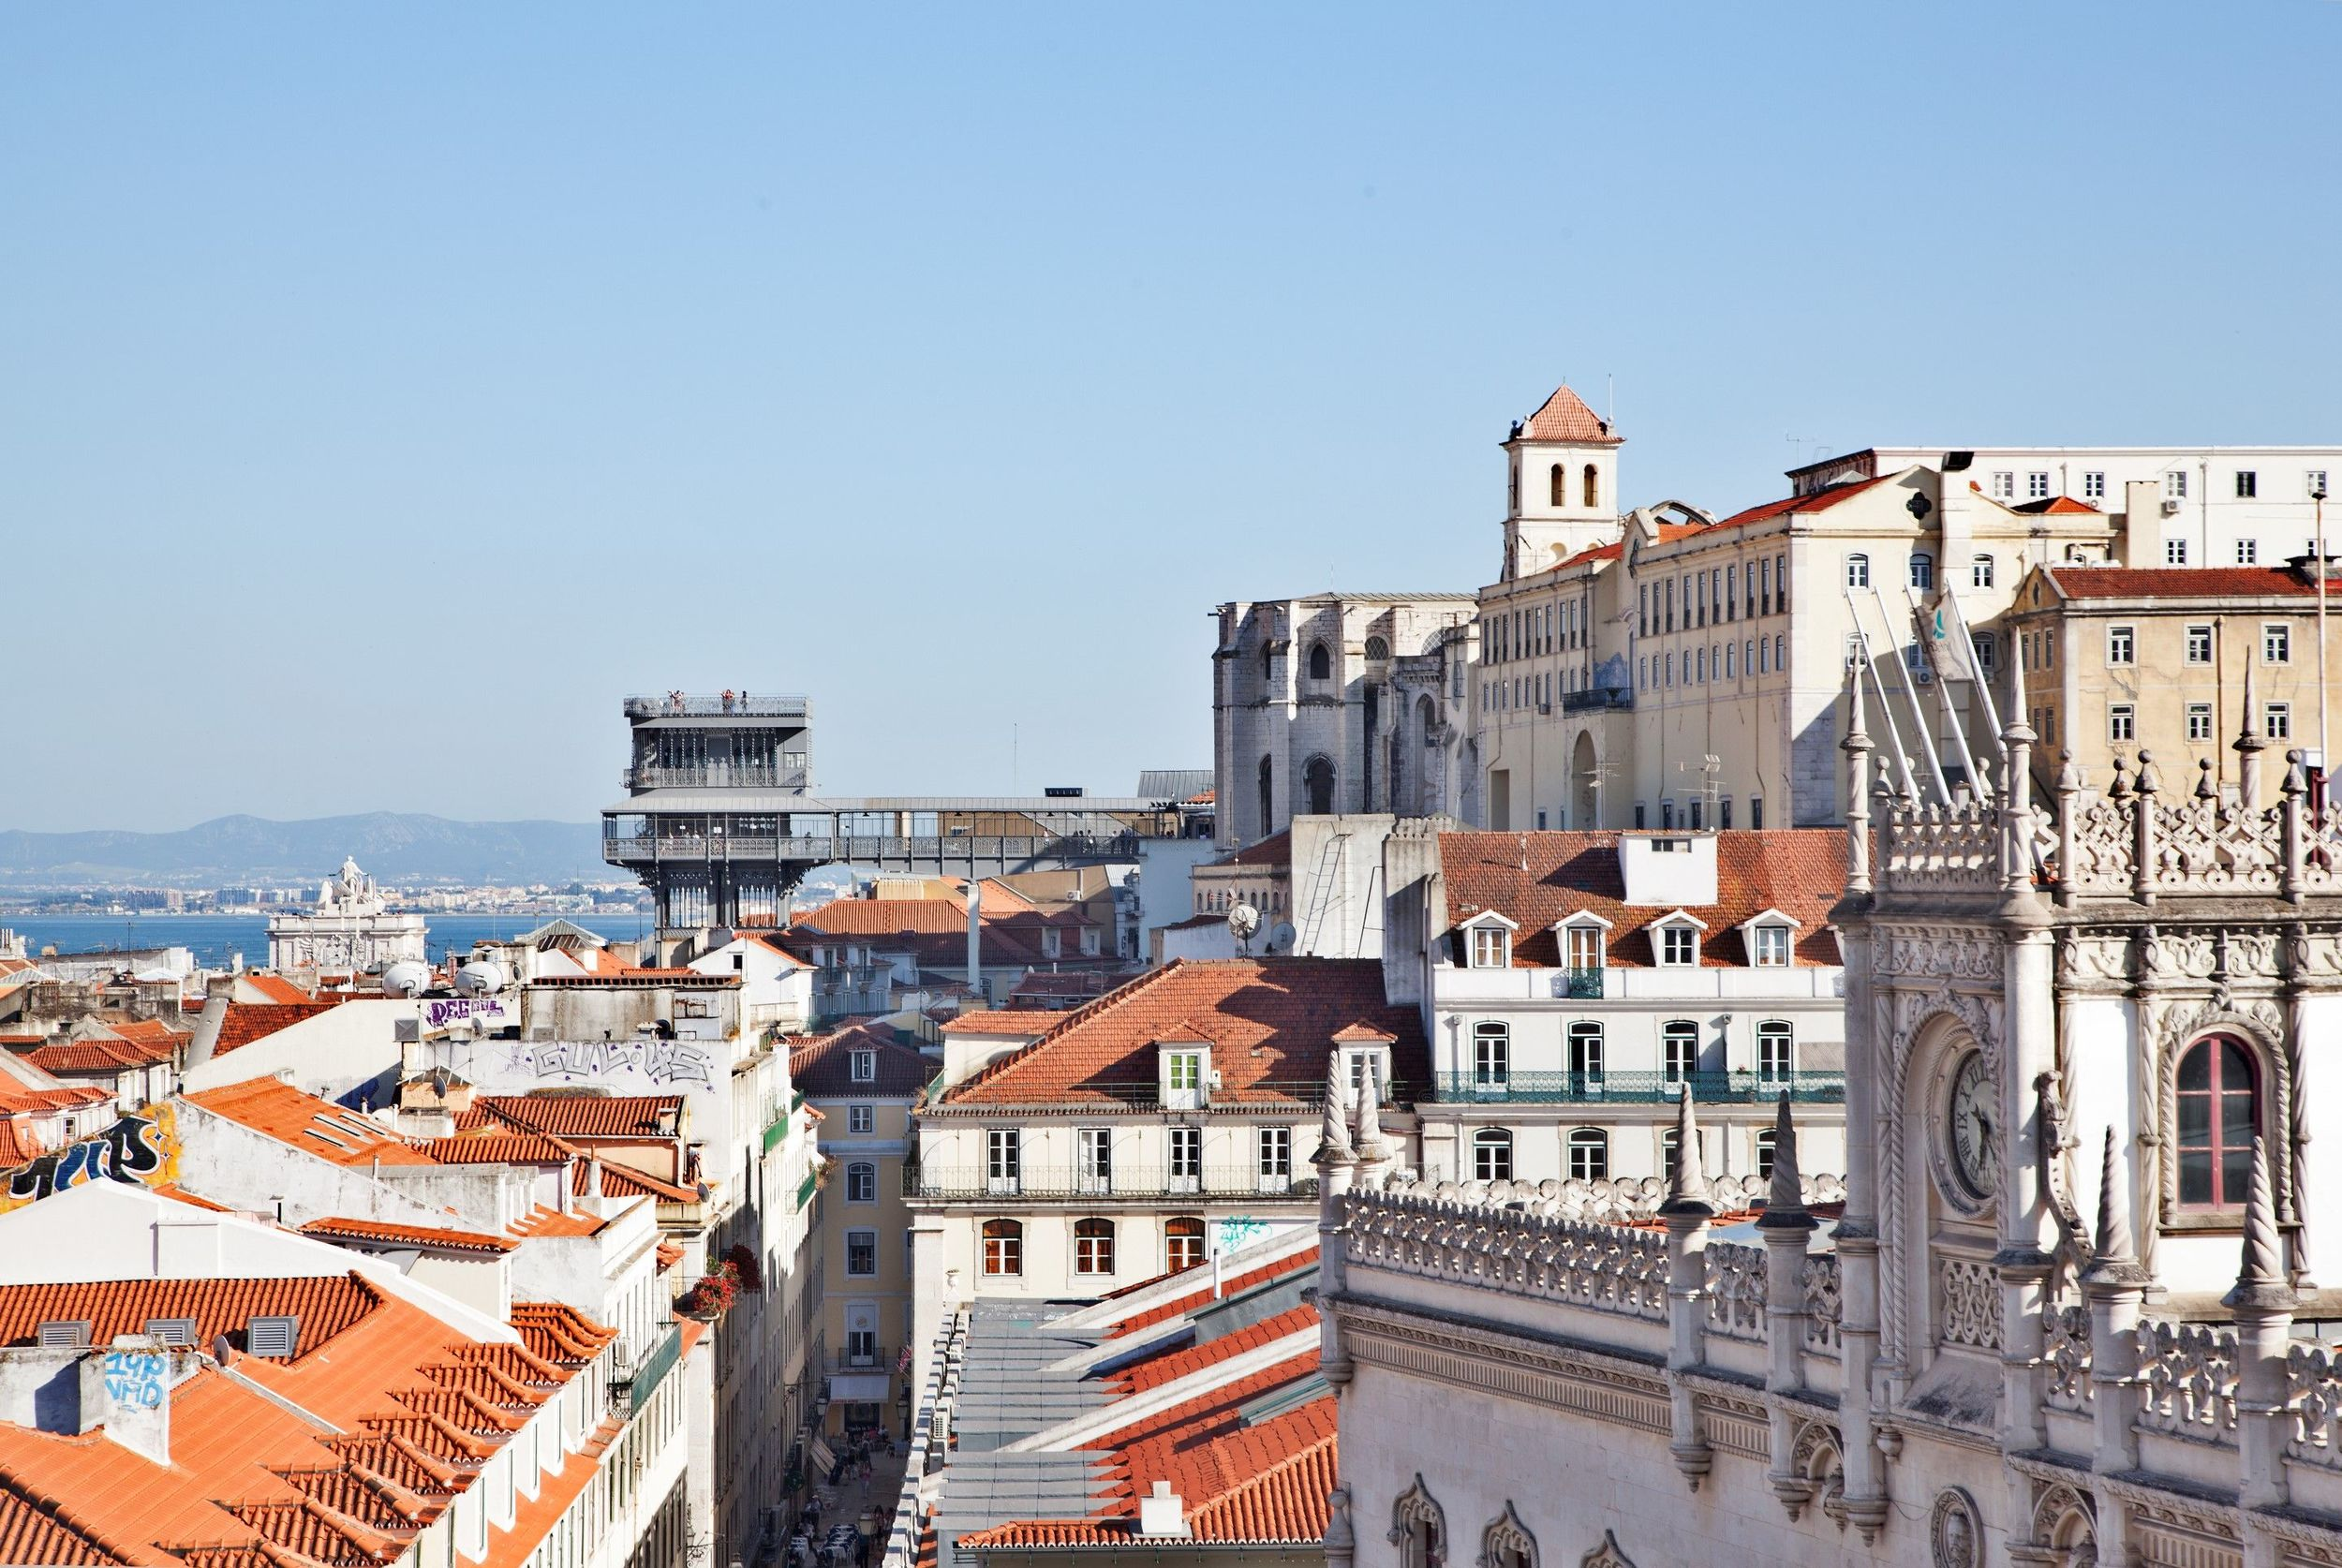 A final look over our rooftop towards the Tagus River